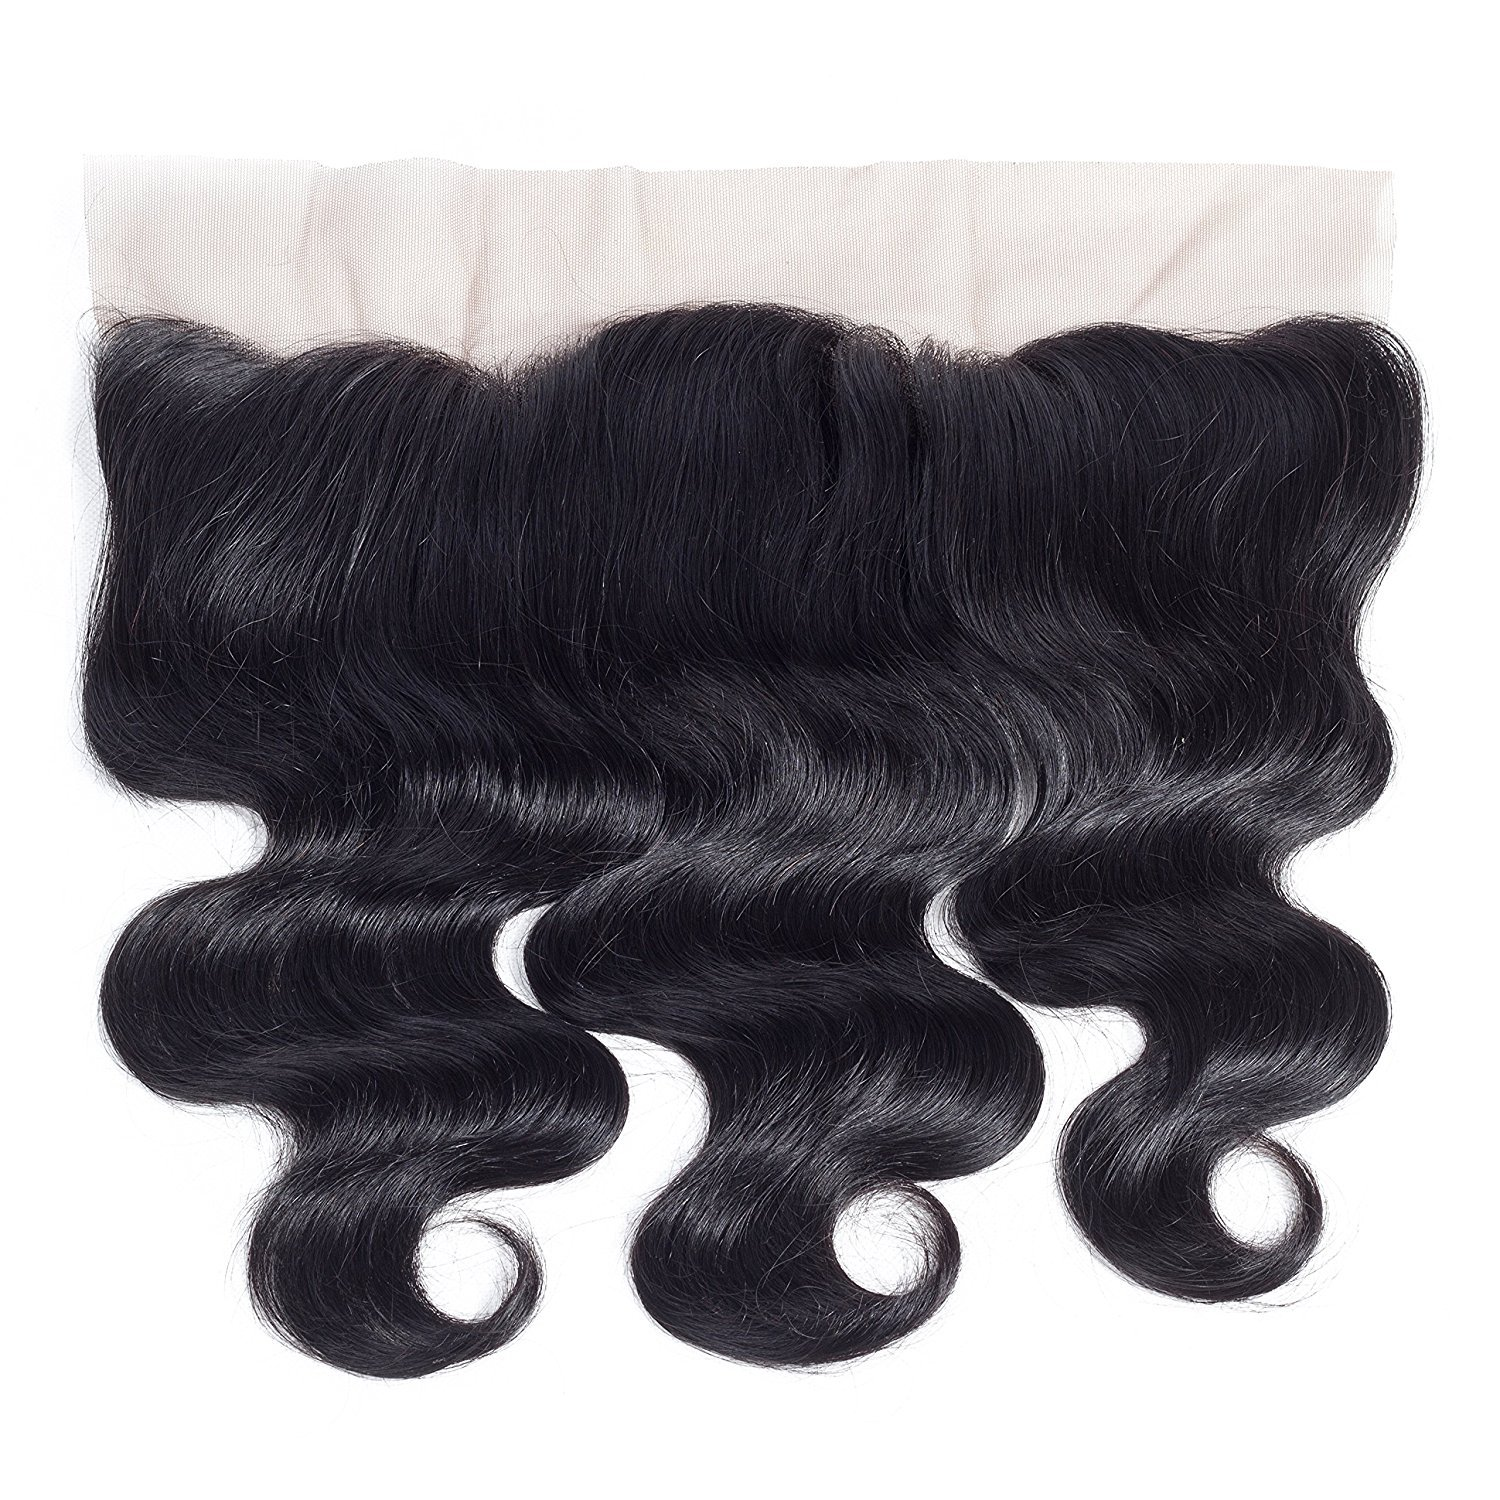 Amella Hair 10A Brazilian Body Wave Frontal(16 18 20+14 Frontal) Bundles with Frontal Ear to Ear Lace Frontal Closure with Bundles Brazilian Body Wave Frontal with Baby Hair Natural Black Color by Amella hair (Image #5)